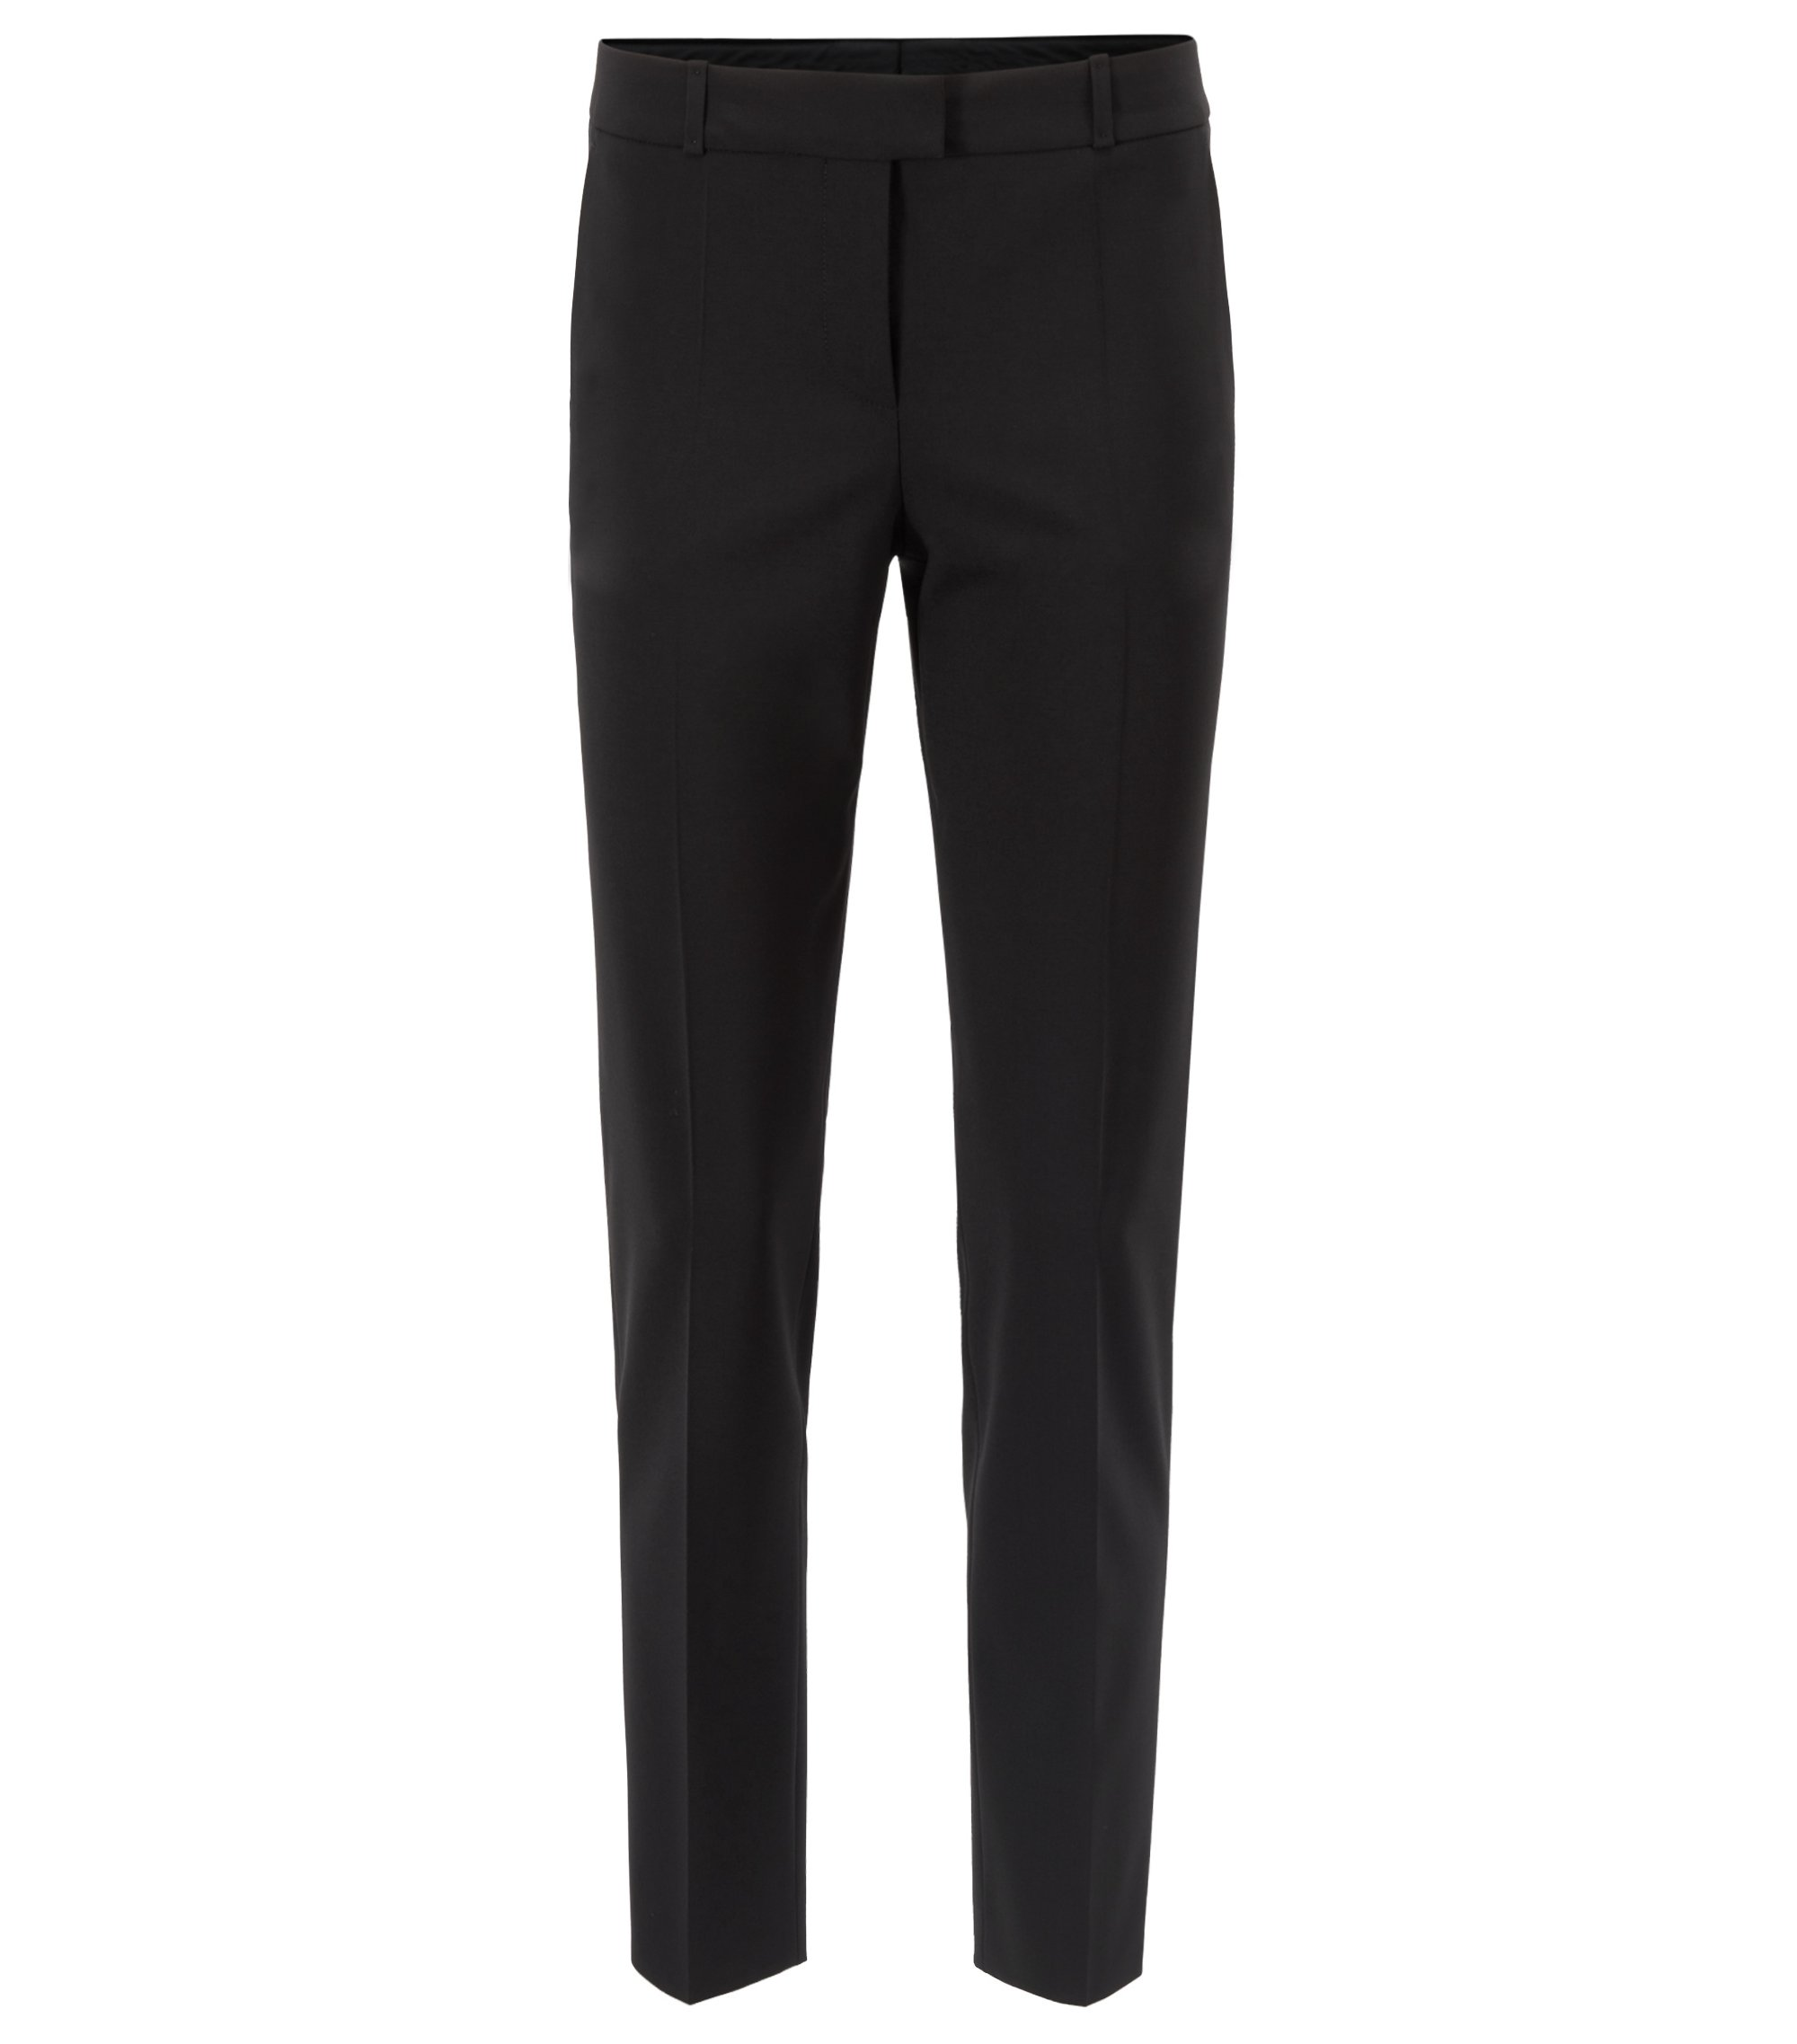 Cropped relaxed-fit trousers in Italian stretch wool, Zwart